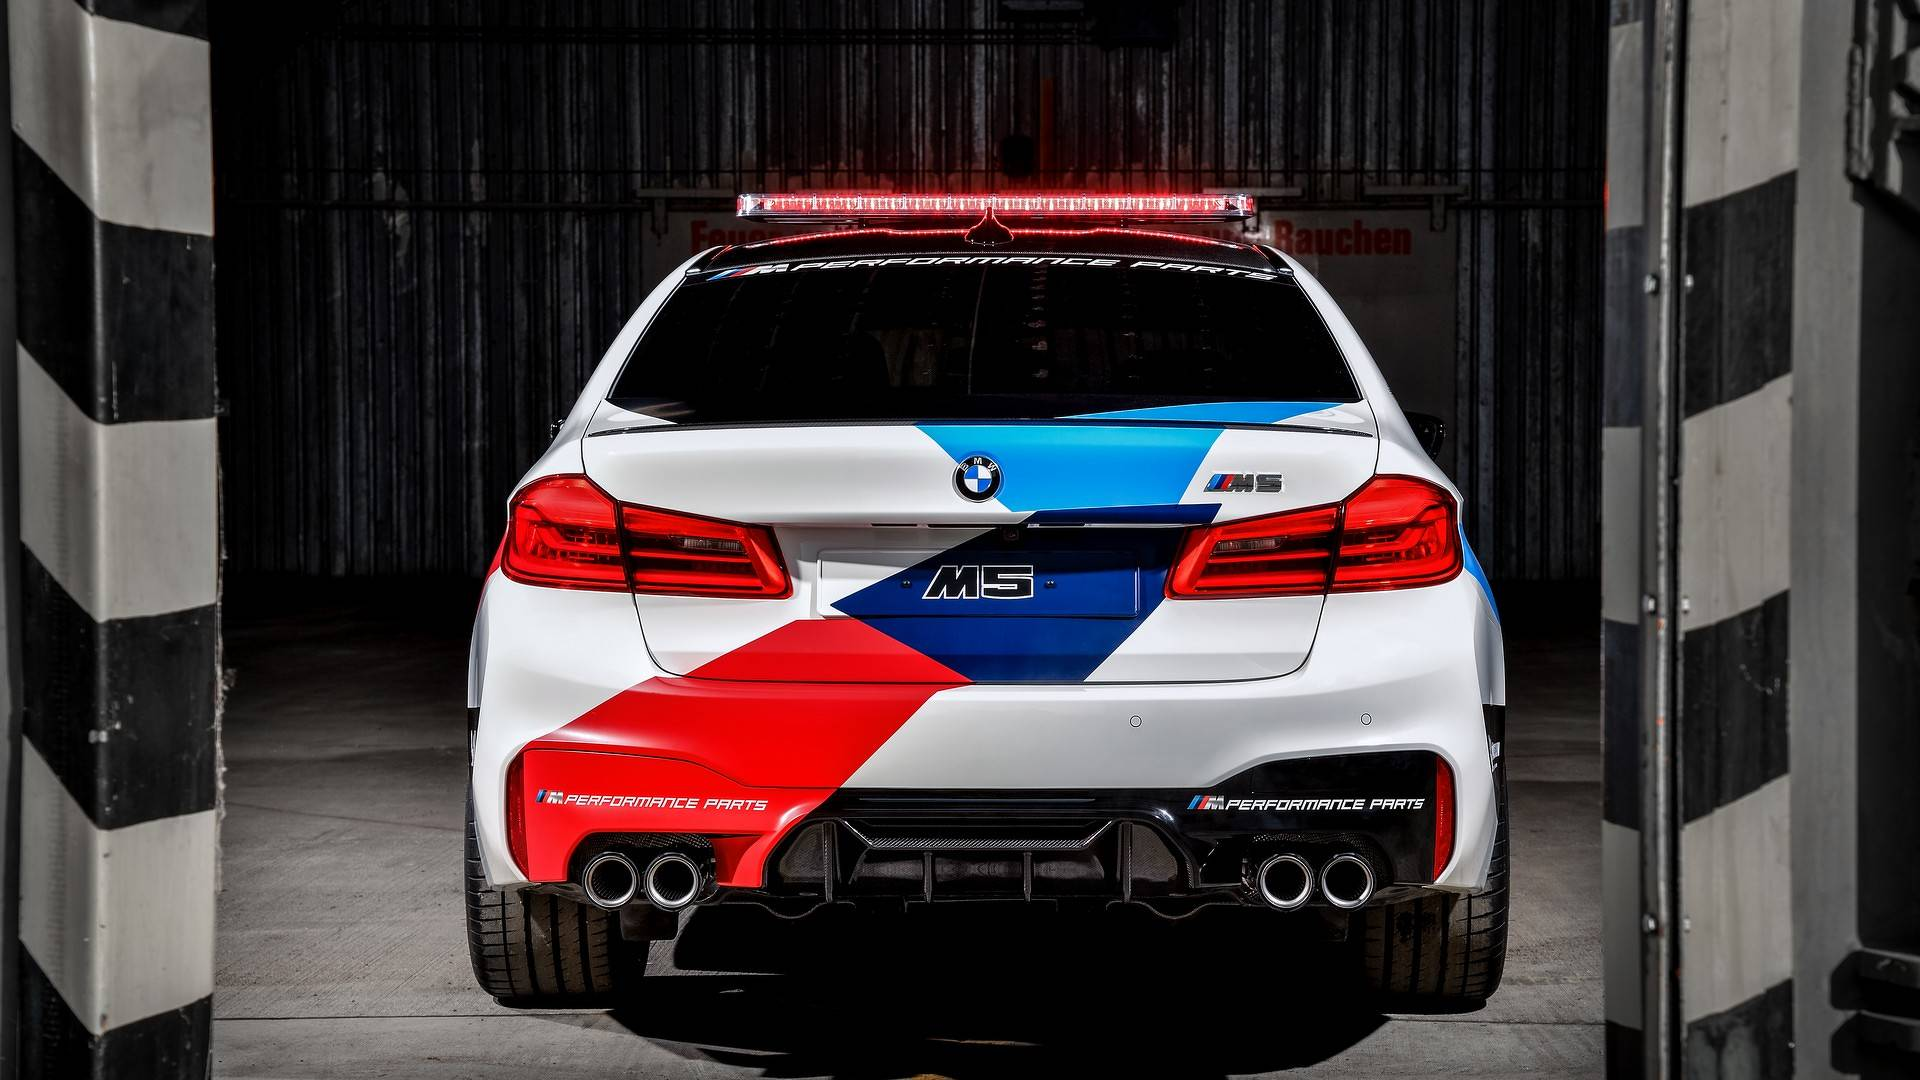 bmw-m5-motogp-safety-car (25)